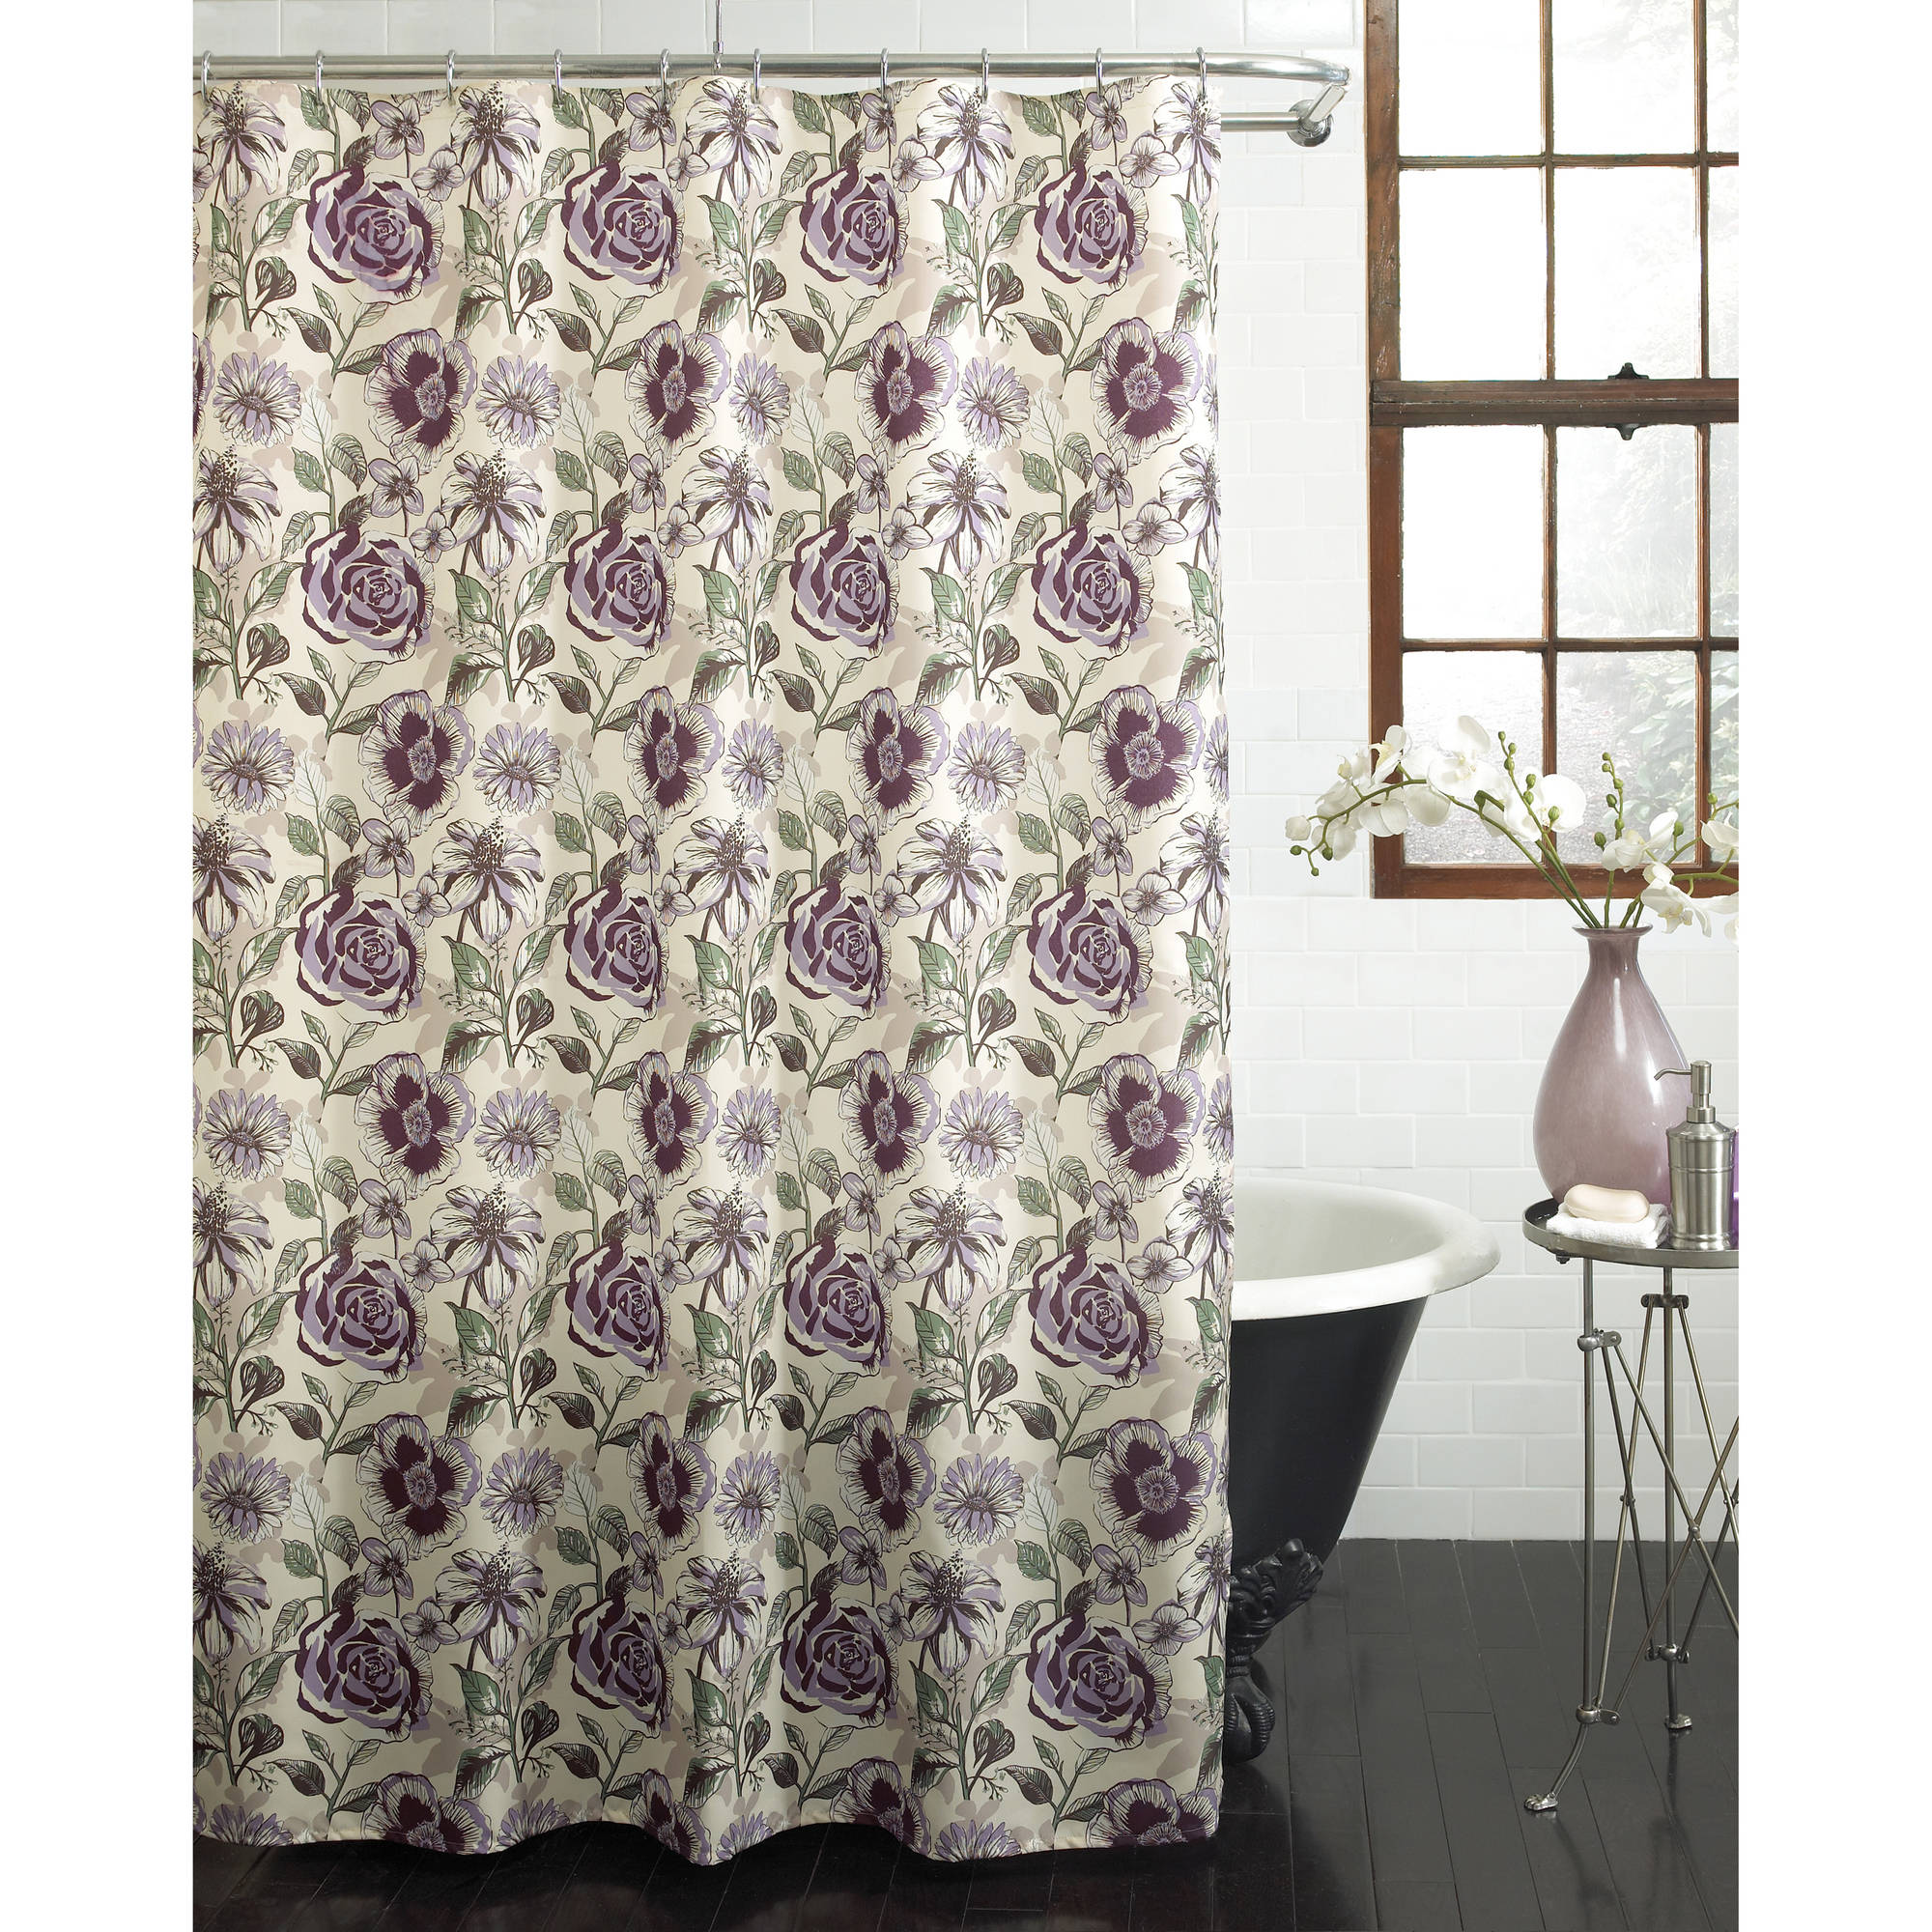 "Excell Suzanna 70"" x 72"" Fabric Shower Curtain, Multi-Colored"